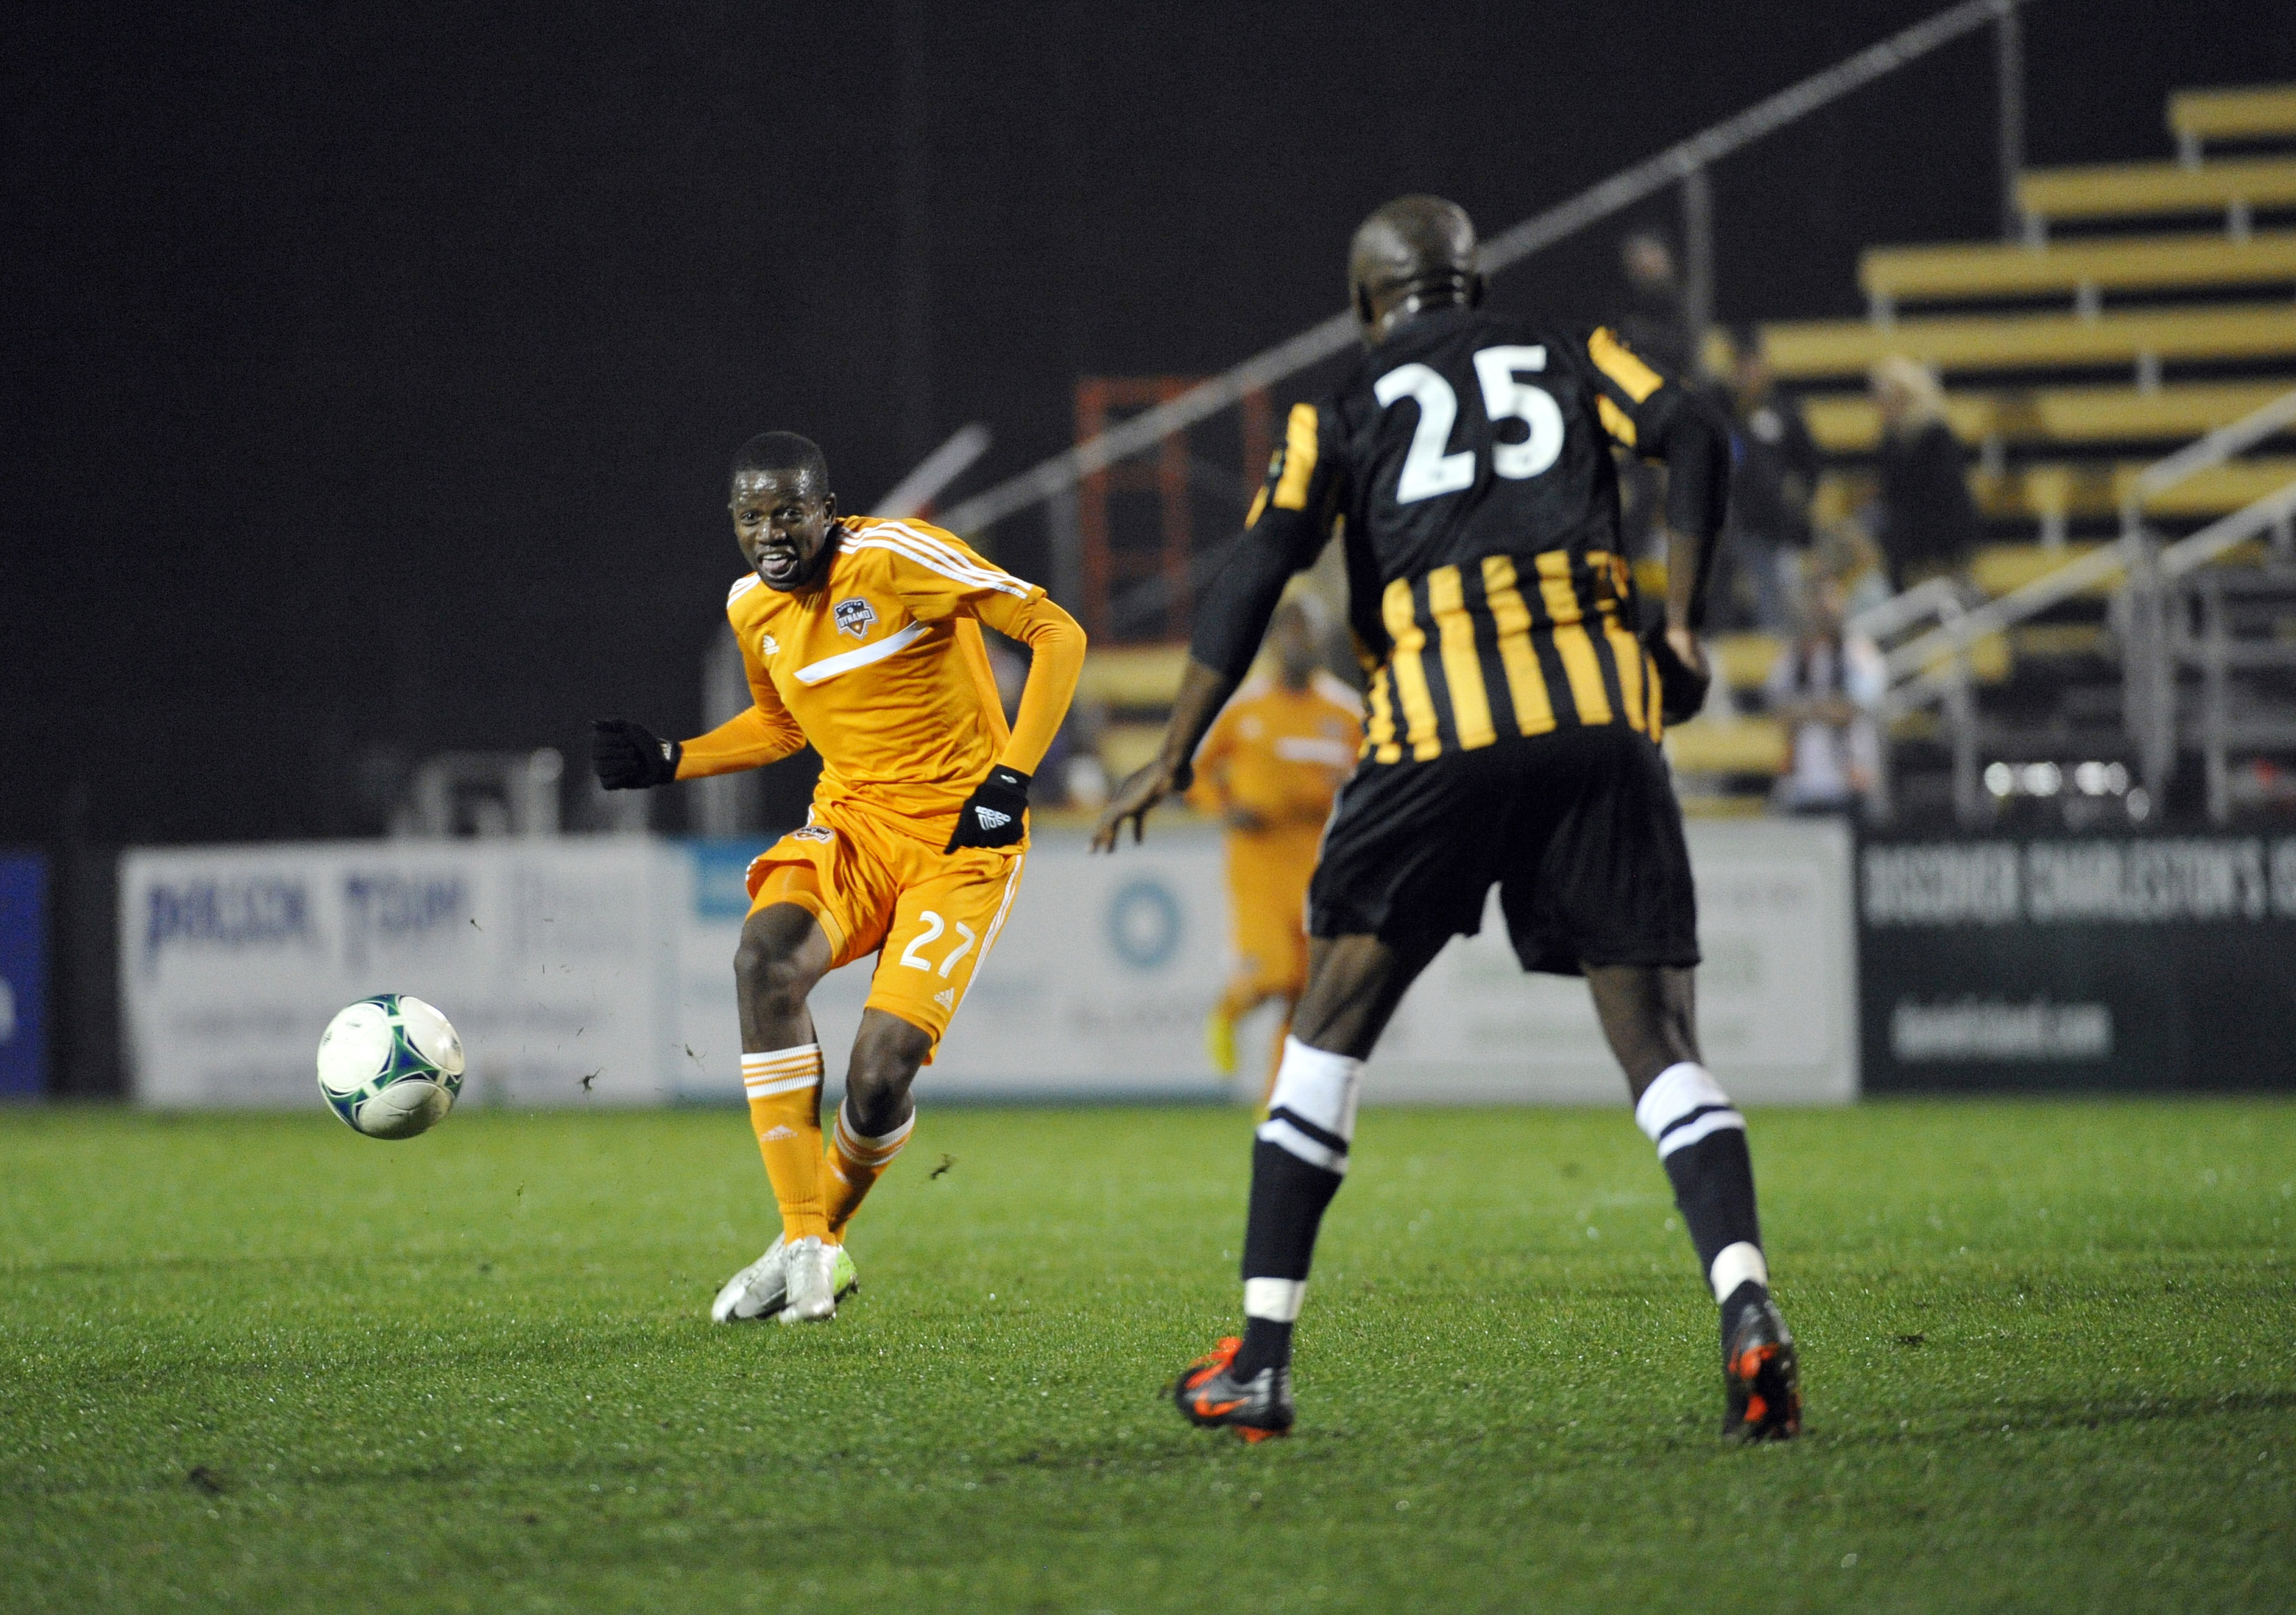 Unfortunately, the fans of Charleston won't get to see MLS stars like Boniek Garcia at the CCC in 2016.